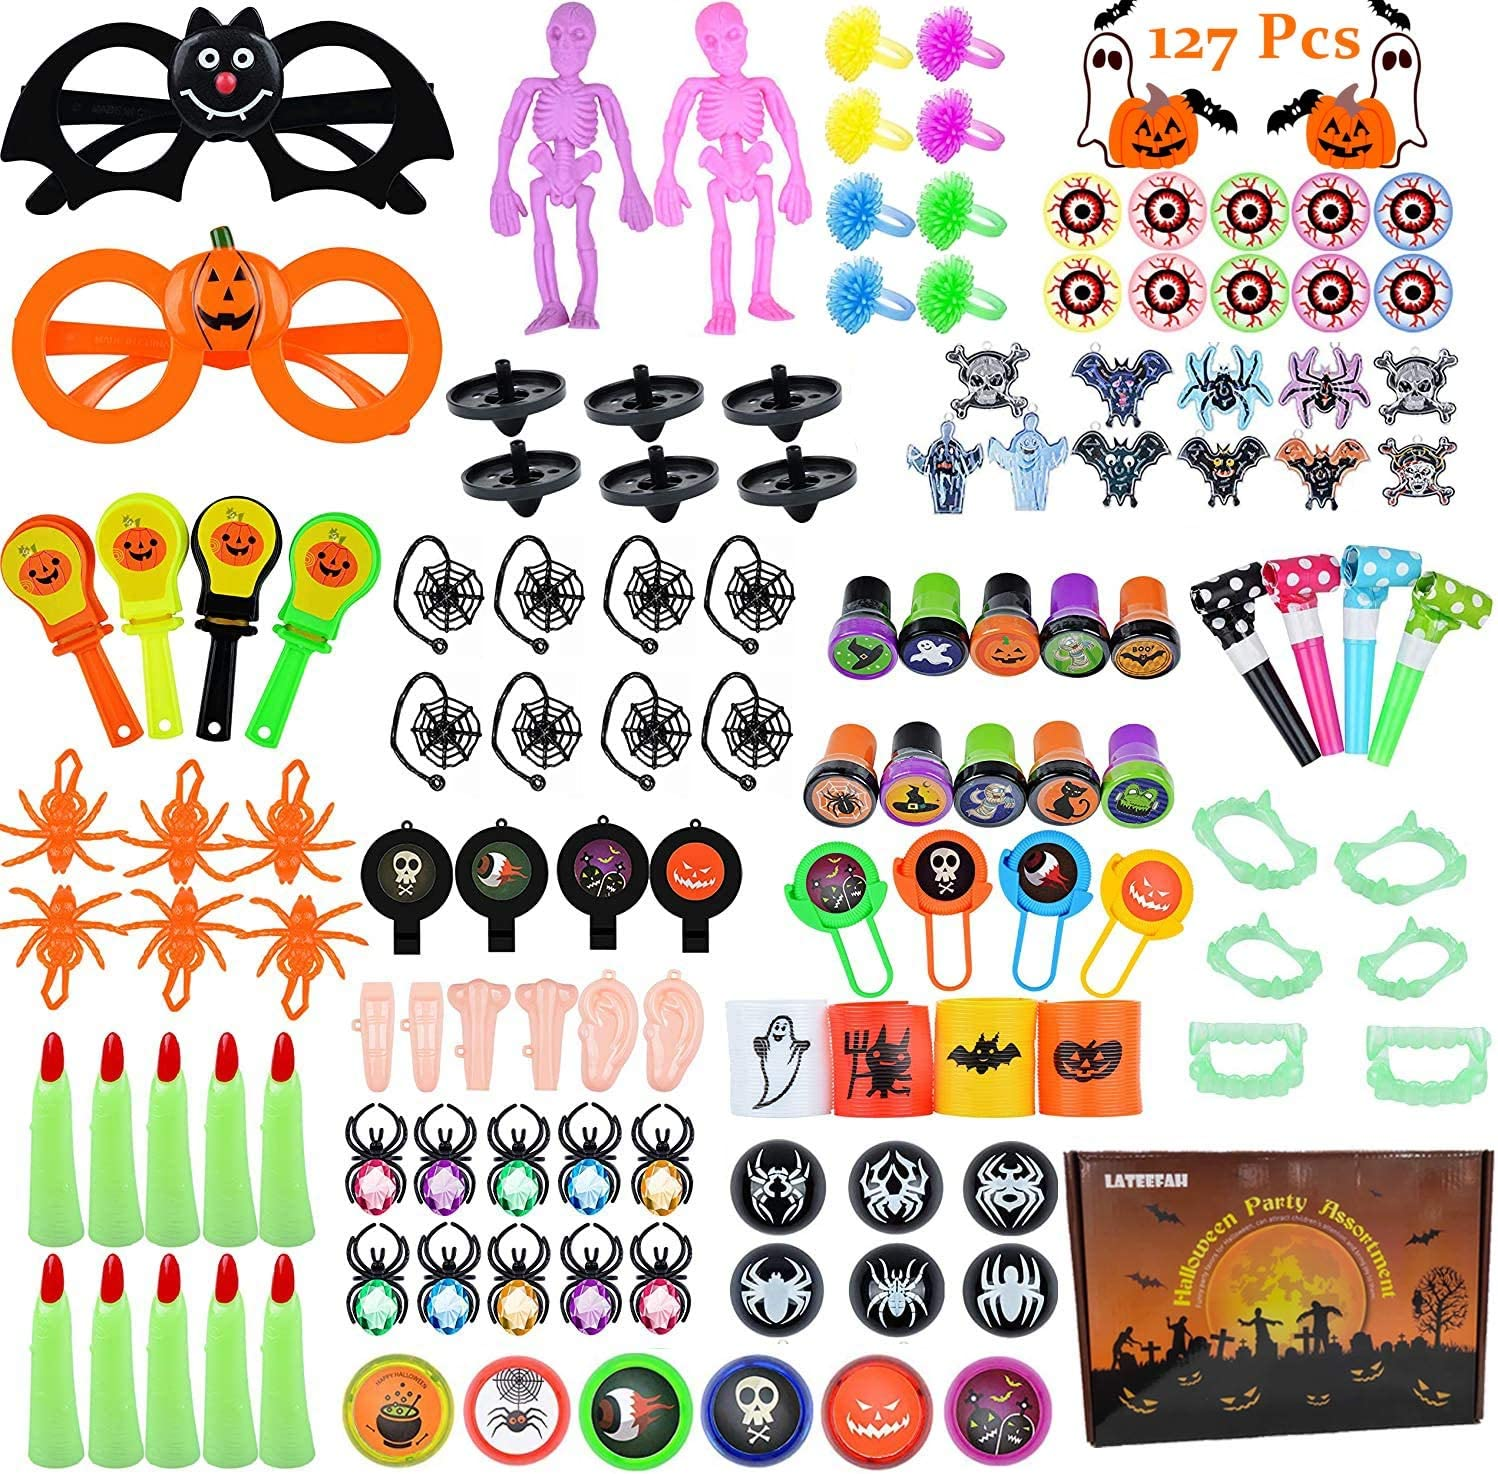 Ranking TOP20 LATEEFAH 127PCS Indefinitely Halloween Party Favors for Bulk Toy Kids